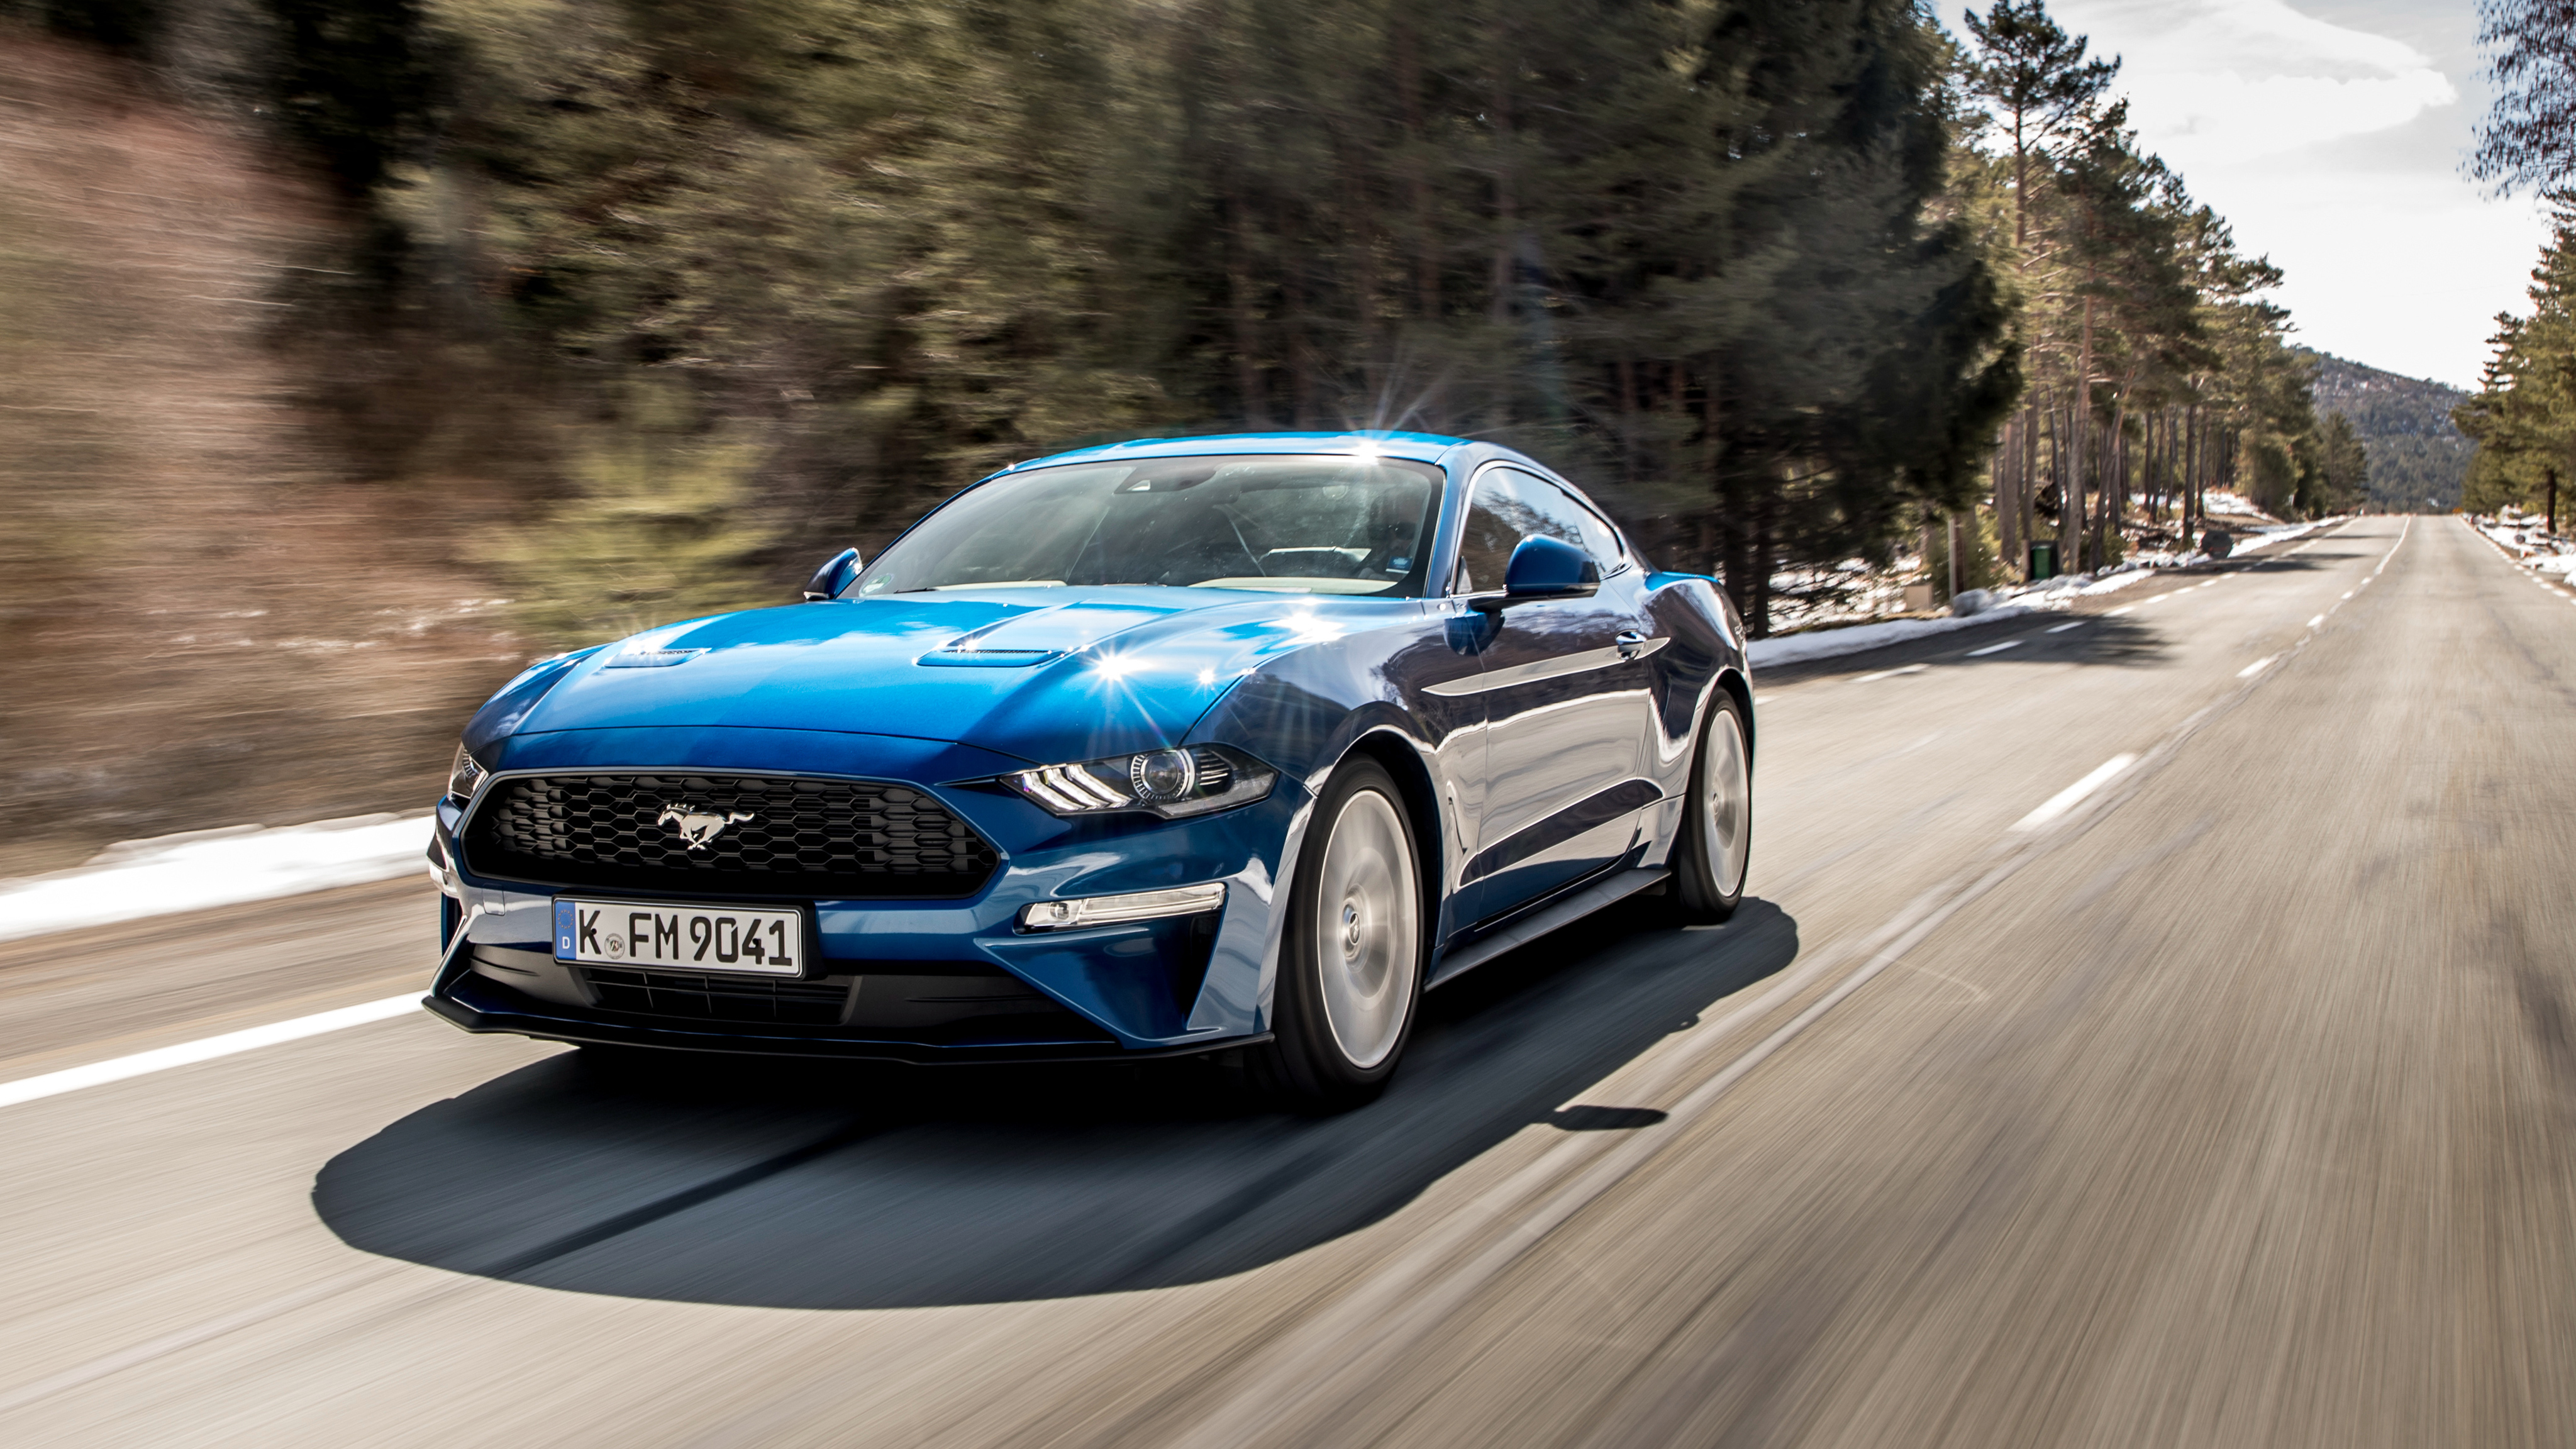 Wallpaper Ford Mustang 2018 Hd Automotive Cars 5863: 2018 Ford Mustang Ecoboost Fastback 4K Wallpaper